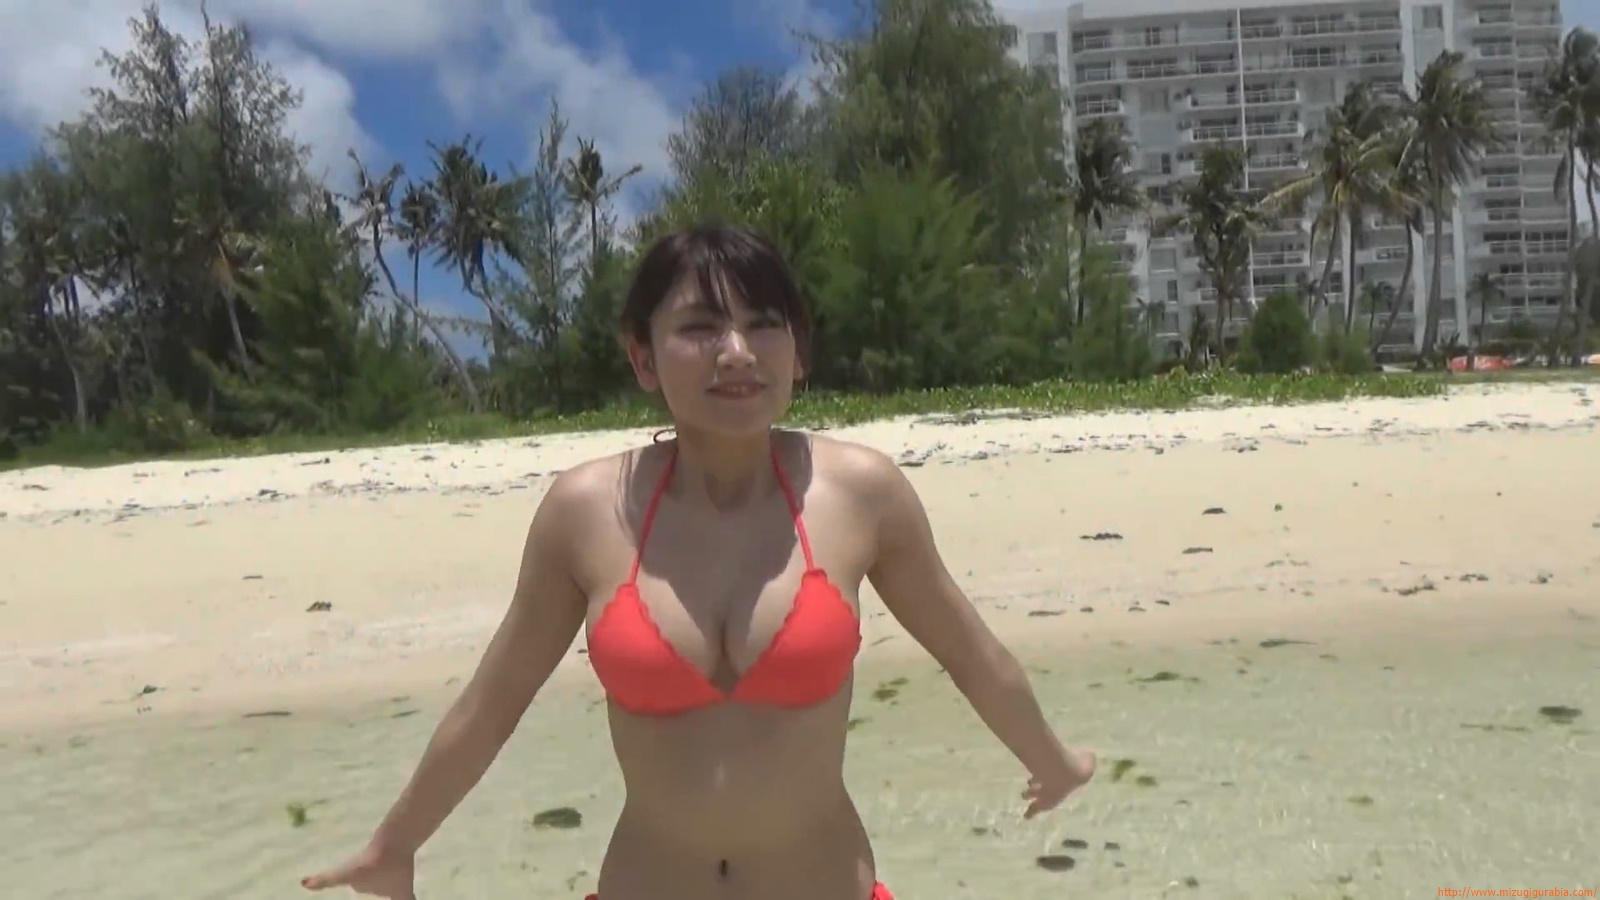 Shes a sunny bodice who continues to lead the way in gravure050